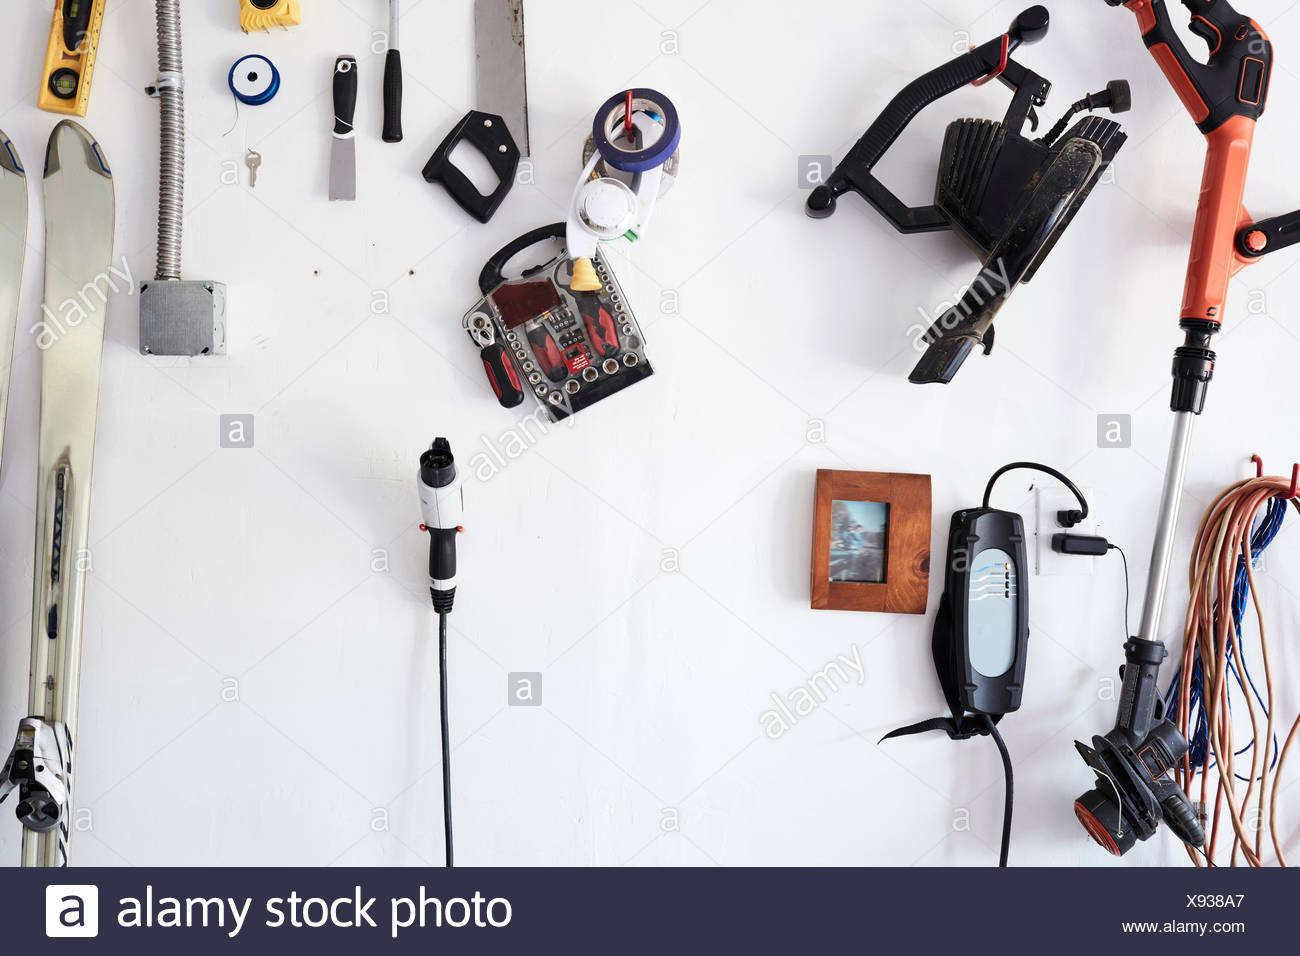 Assortment of gadgets and tools on wall - Stock Image